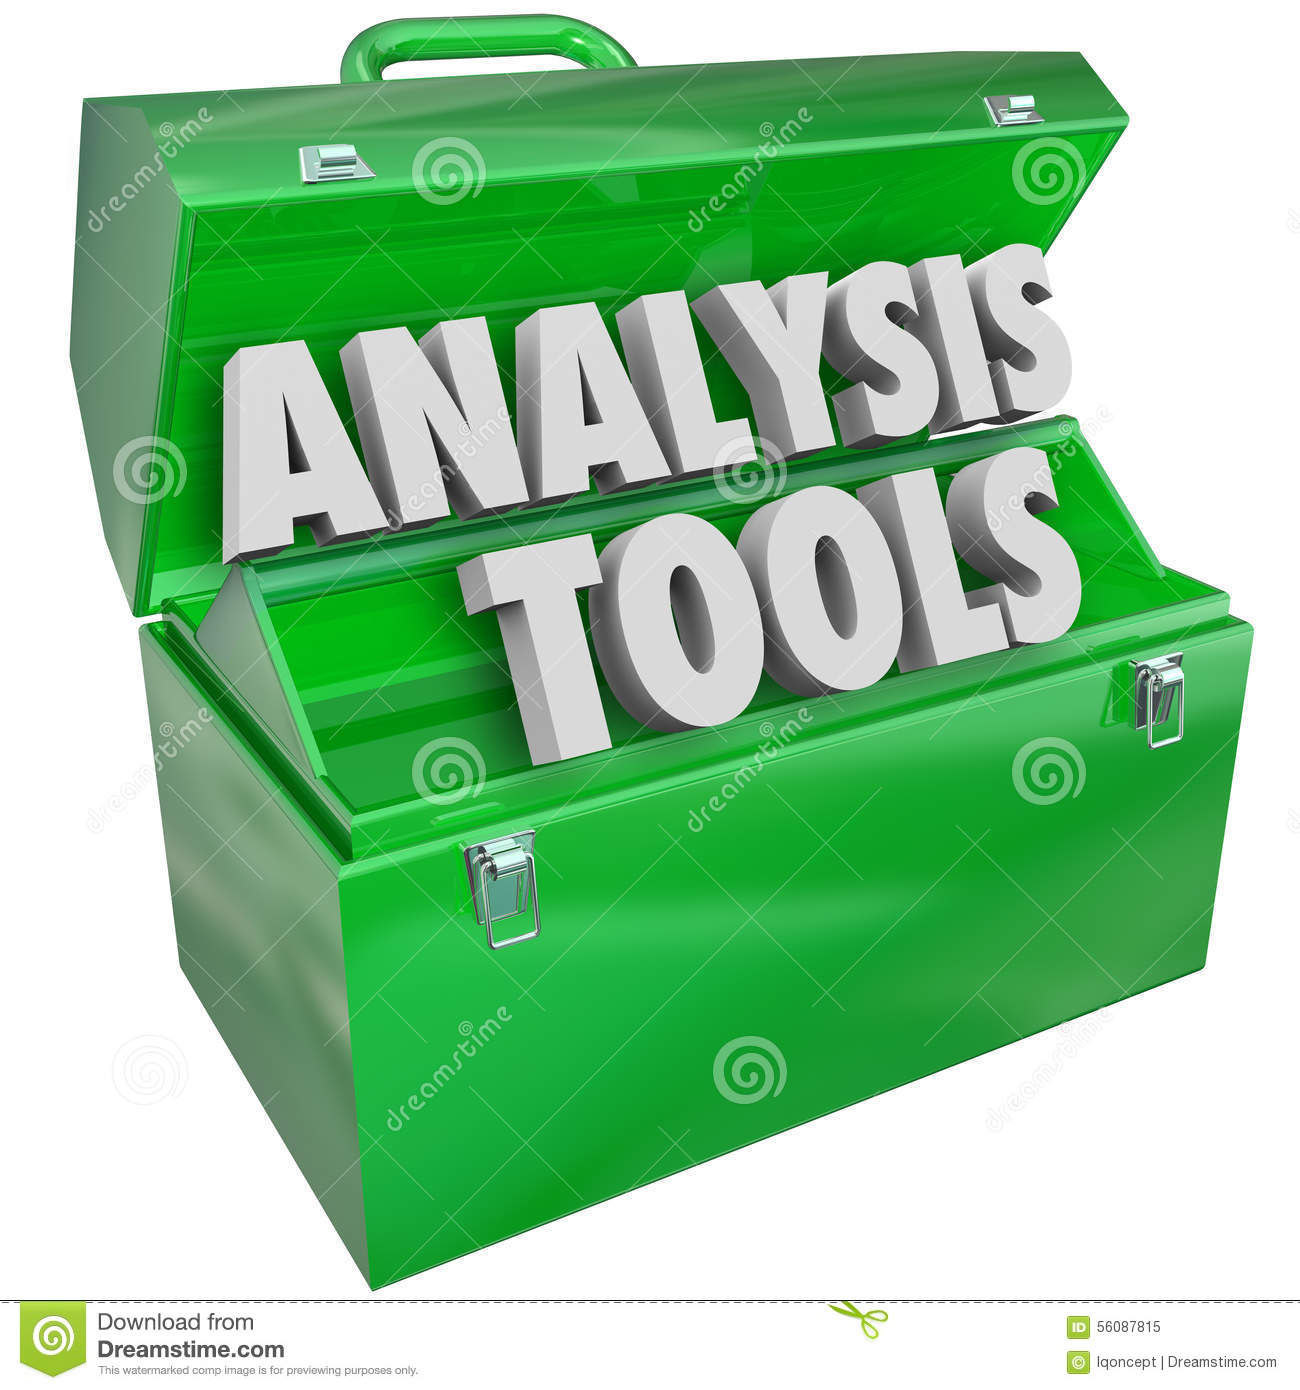 patient centeredness measurement tools and data analysis